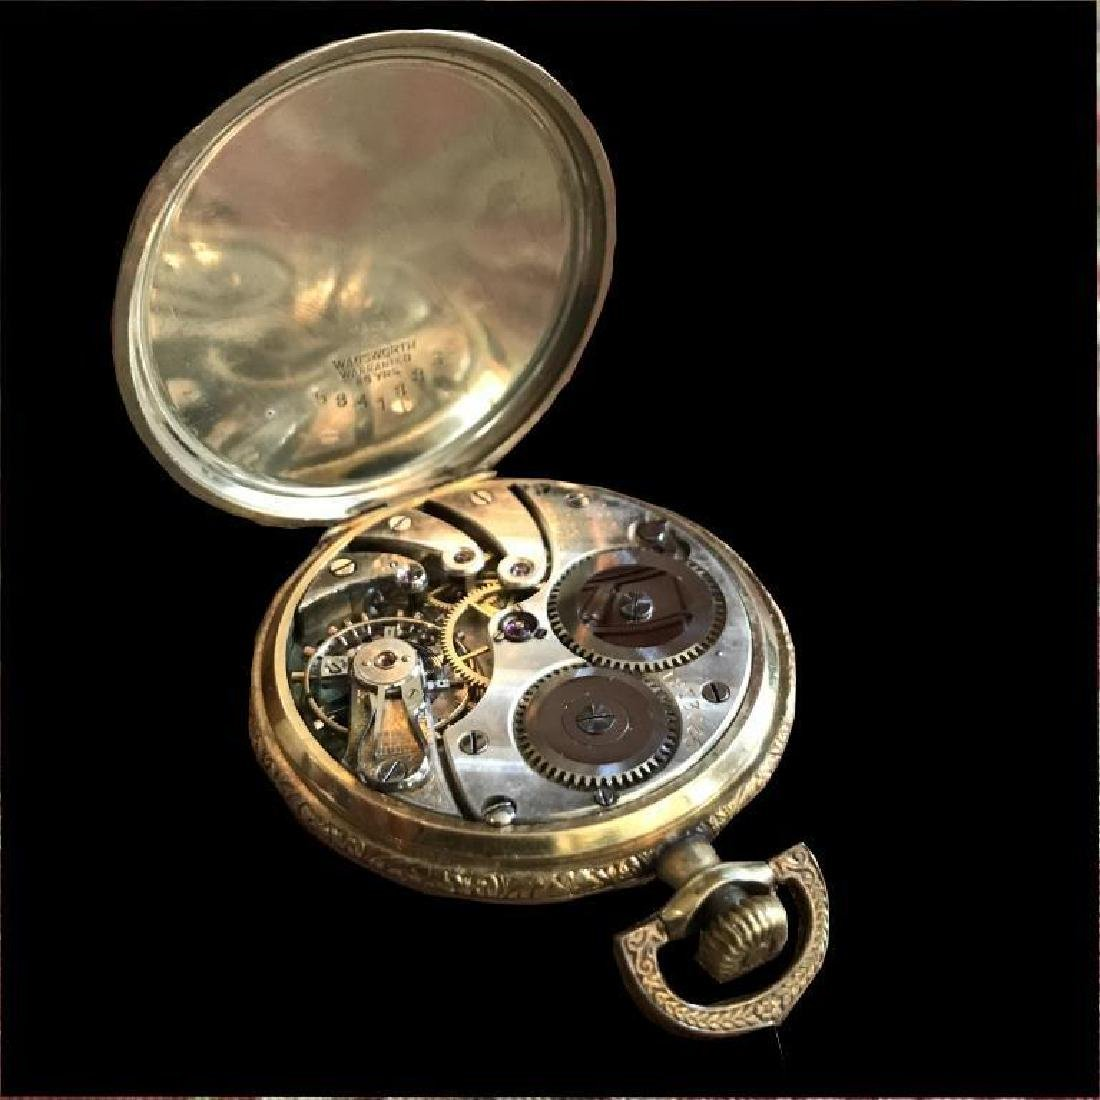 1905 Longines 17 Jewels Gold Filled Pocket Watch - 6